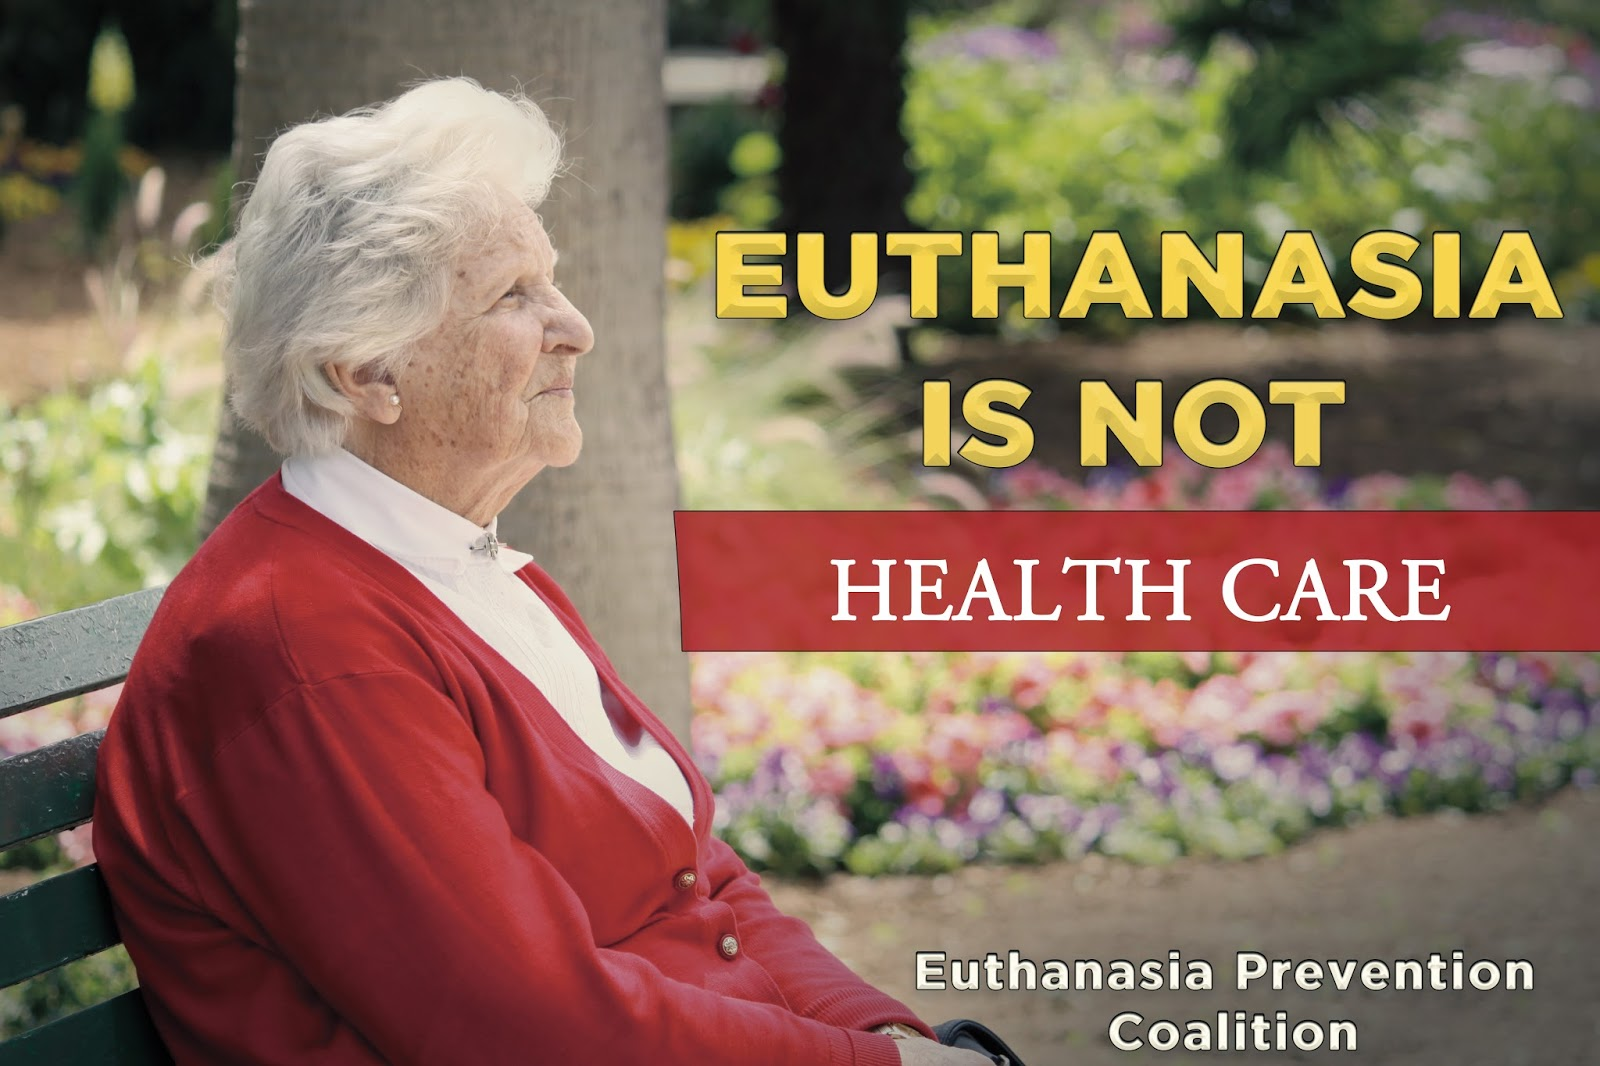 an argument against euthanasia in medical practices Many very solid arguments suggest that euthanasia—especially in the modern era—enjoys no place whatsoever in a medical practice treating human patients most of these reasons concern ethical and spiritual considerations, but at least two practical rationales exist as well.